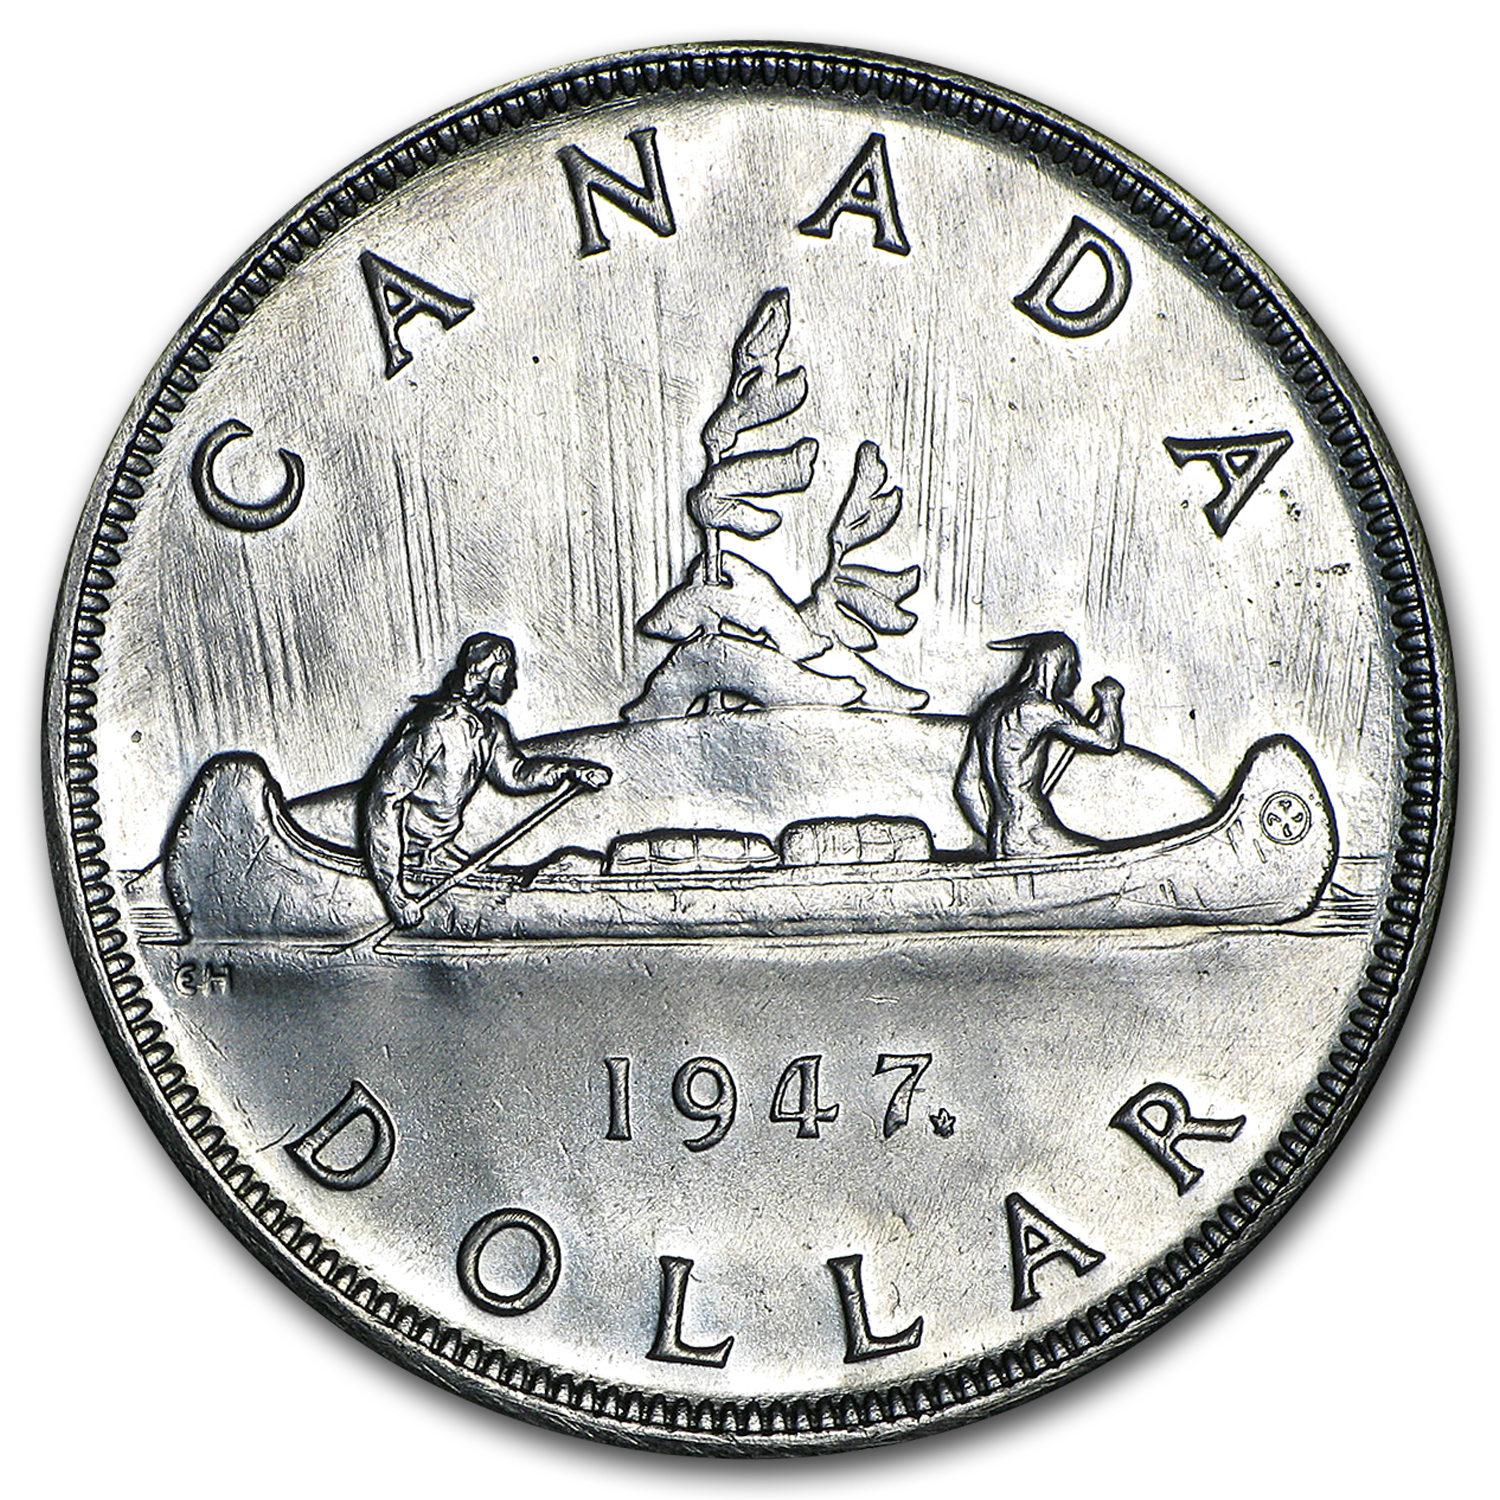 1947 Canada Silver Dollar Maple Leaf BU Details (Cleaned)